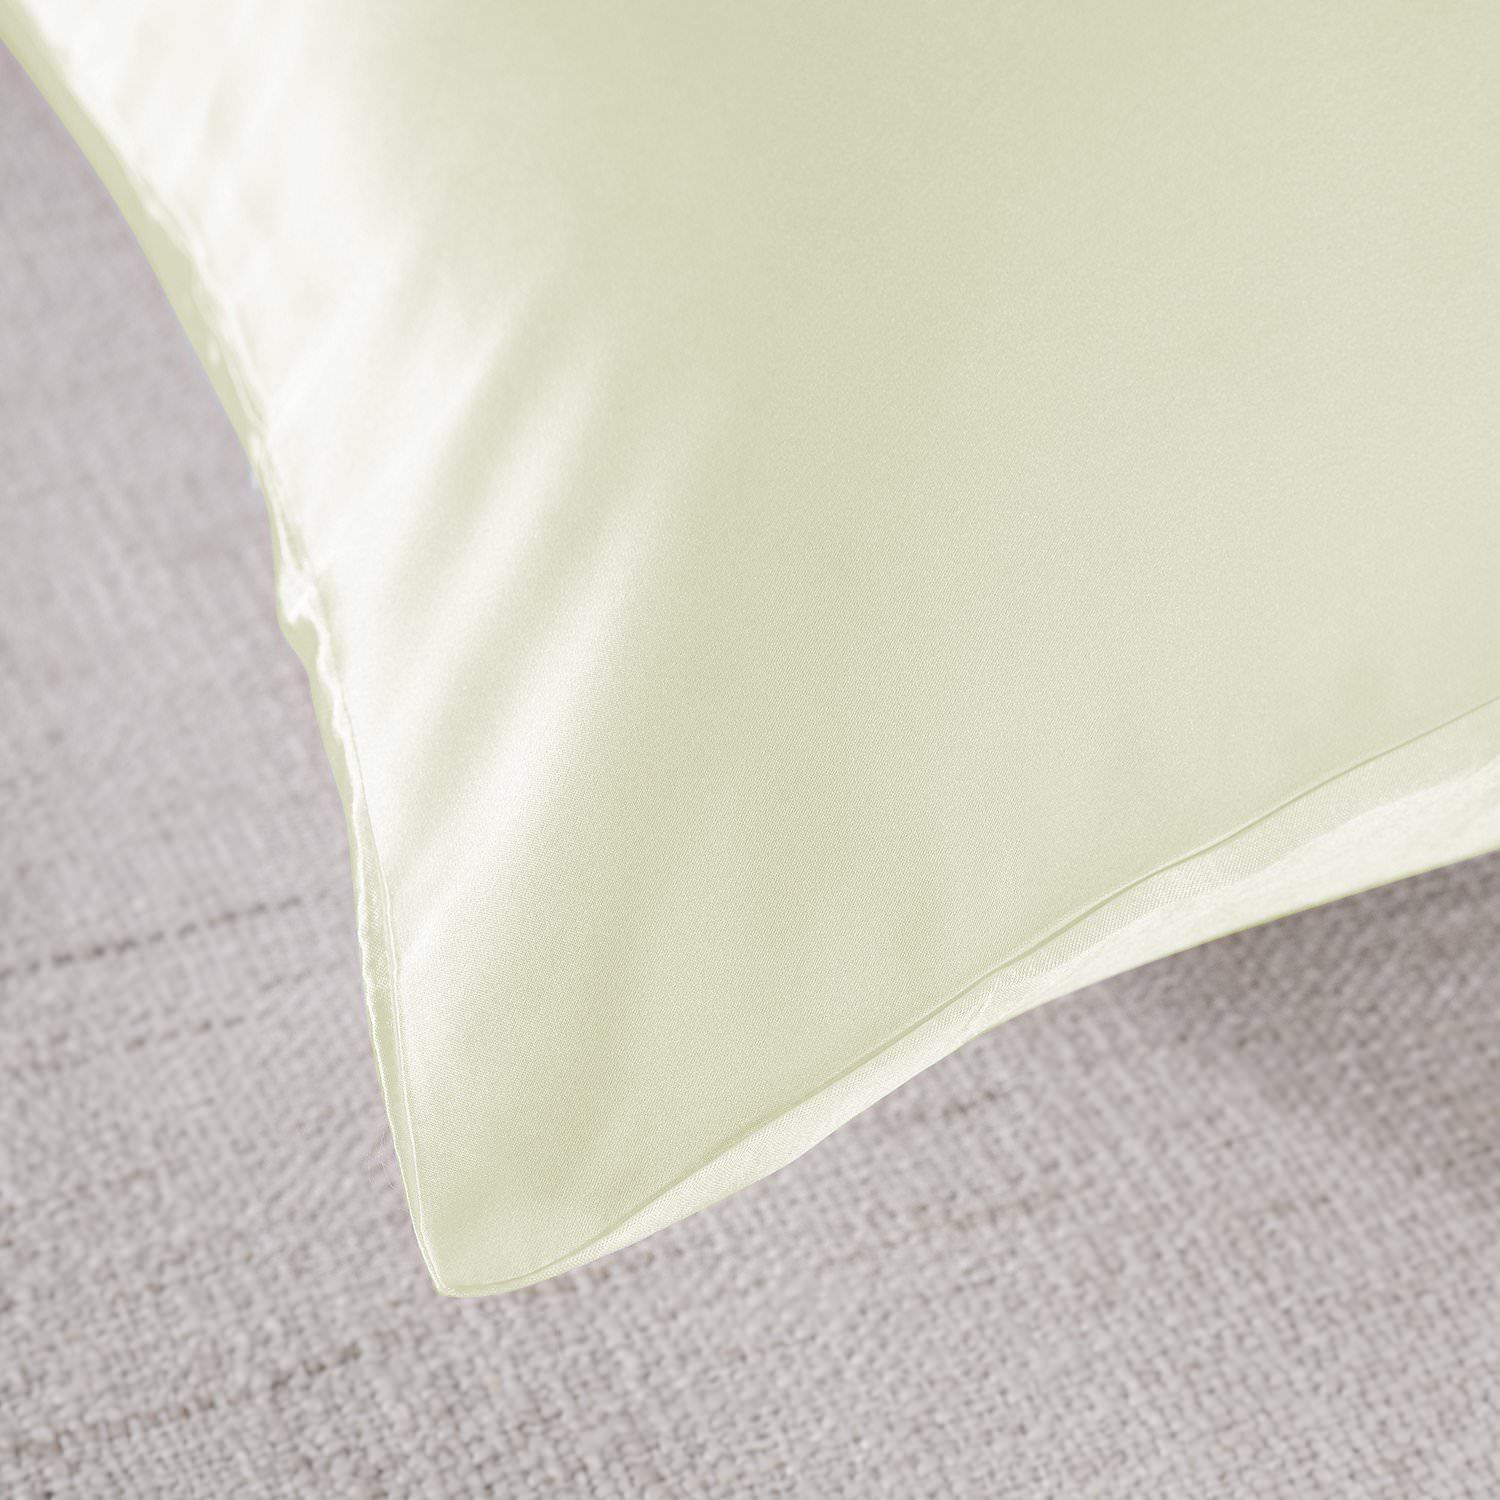 Royal-Comfort-Mulberry-Soft-Silk-Hypoallergenic-Pillowcase-Twin-Pack-51-x-76cm thumbnail 25